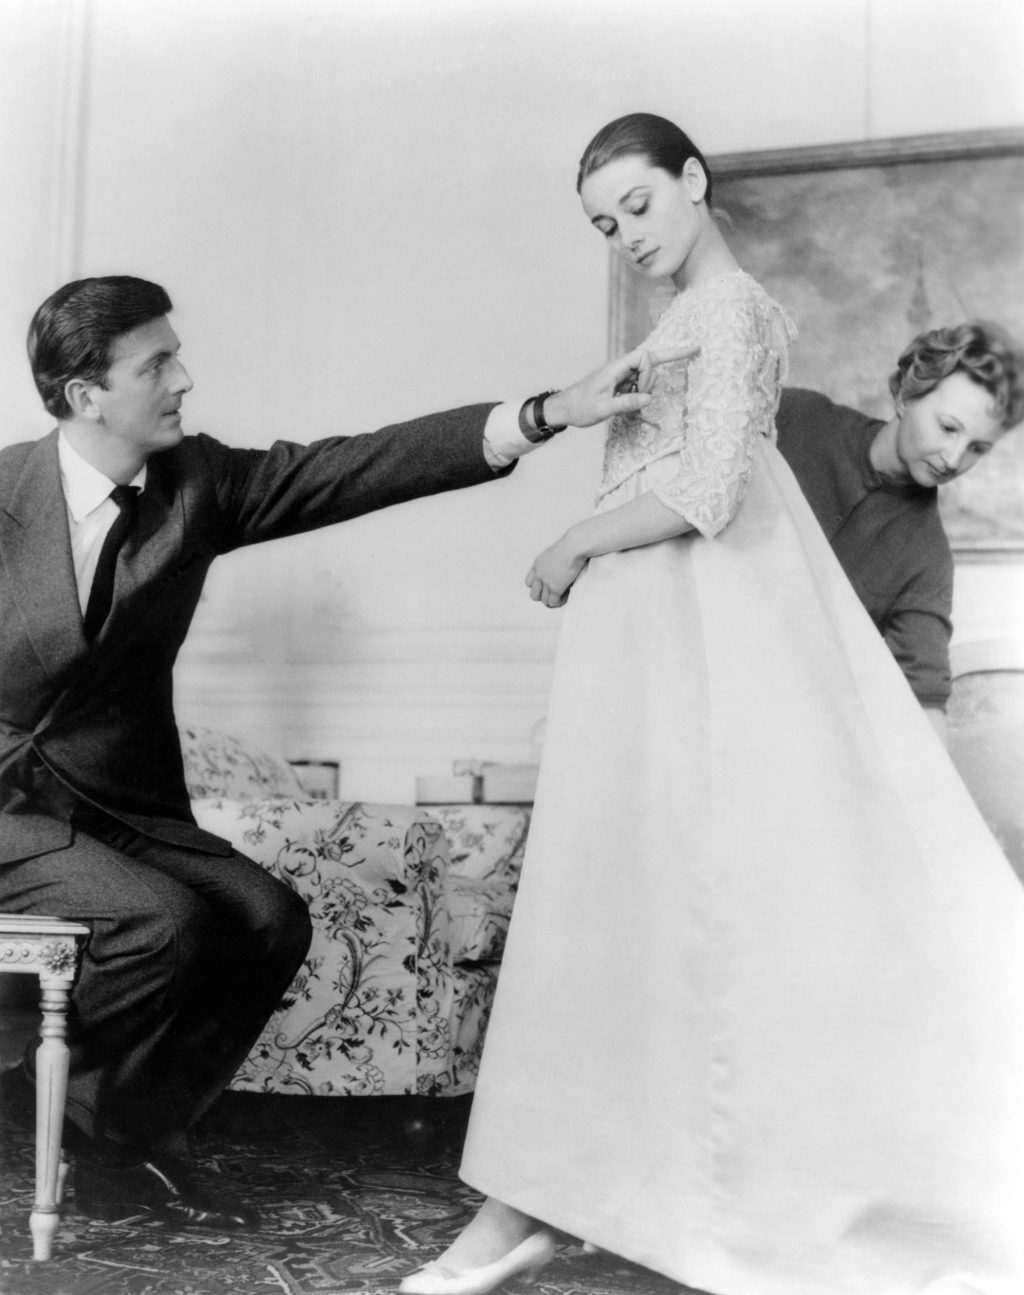 Remembering Fashion's Most Enduring Visionary, Hubert de Givenchy